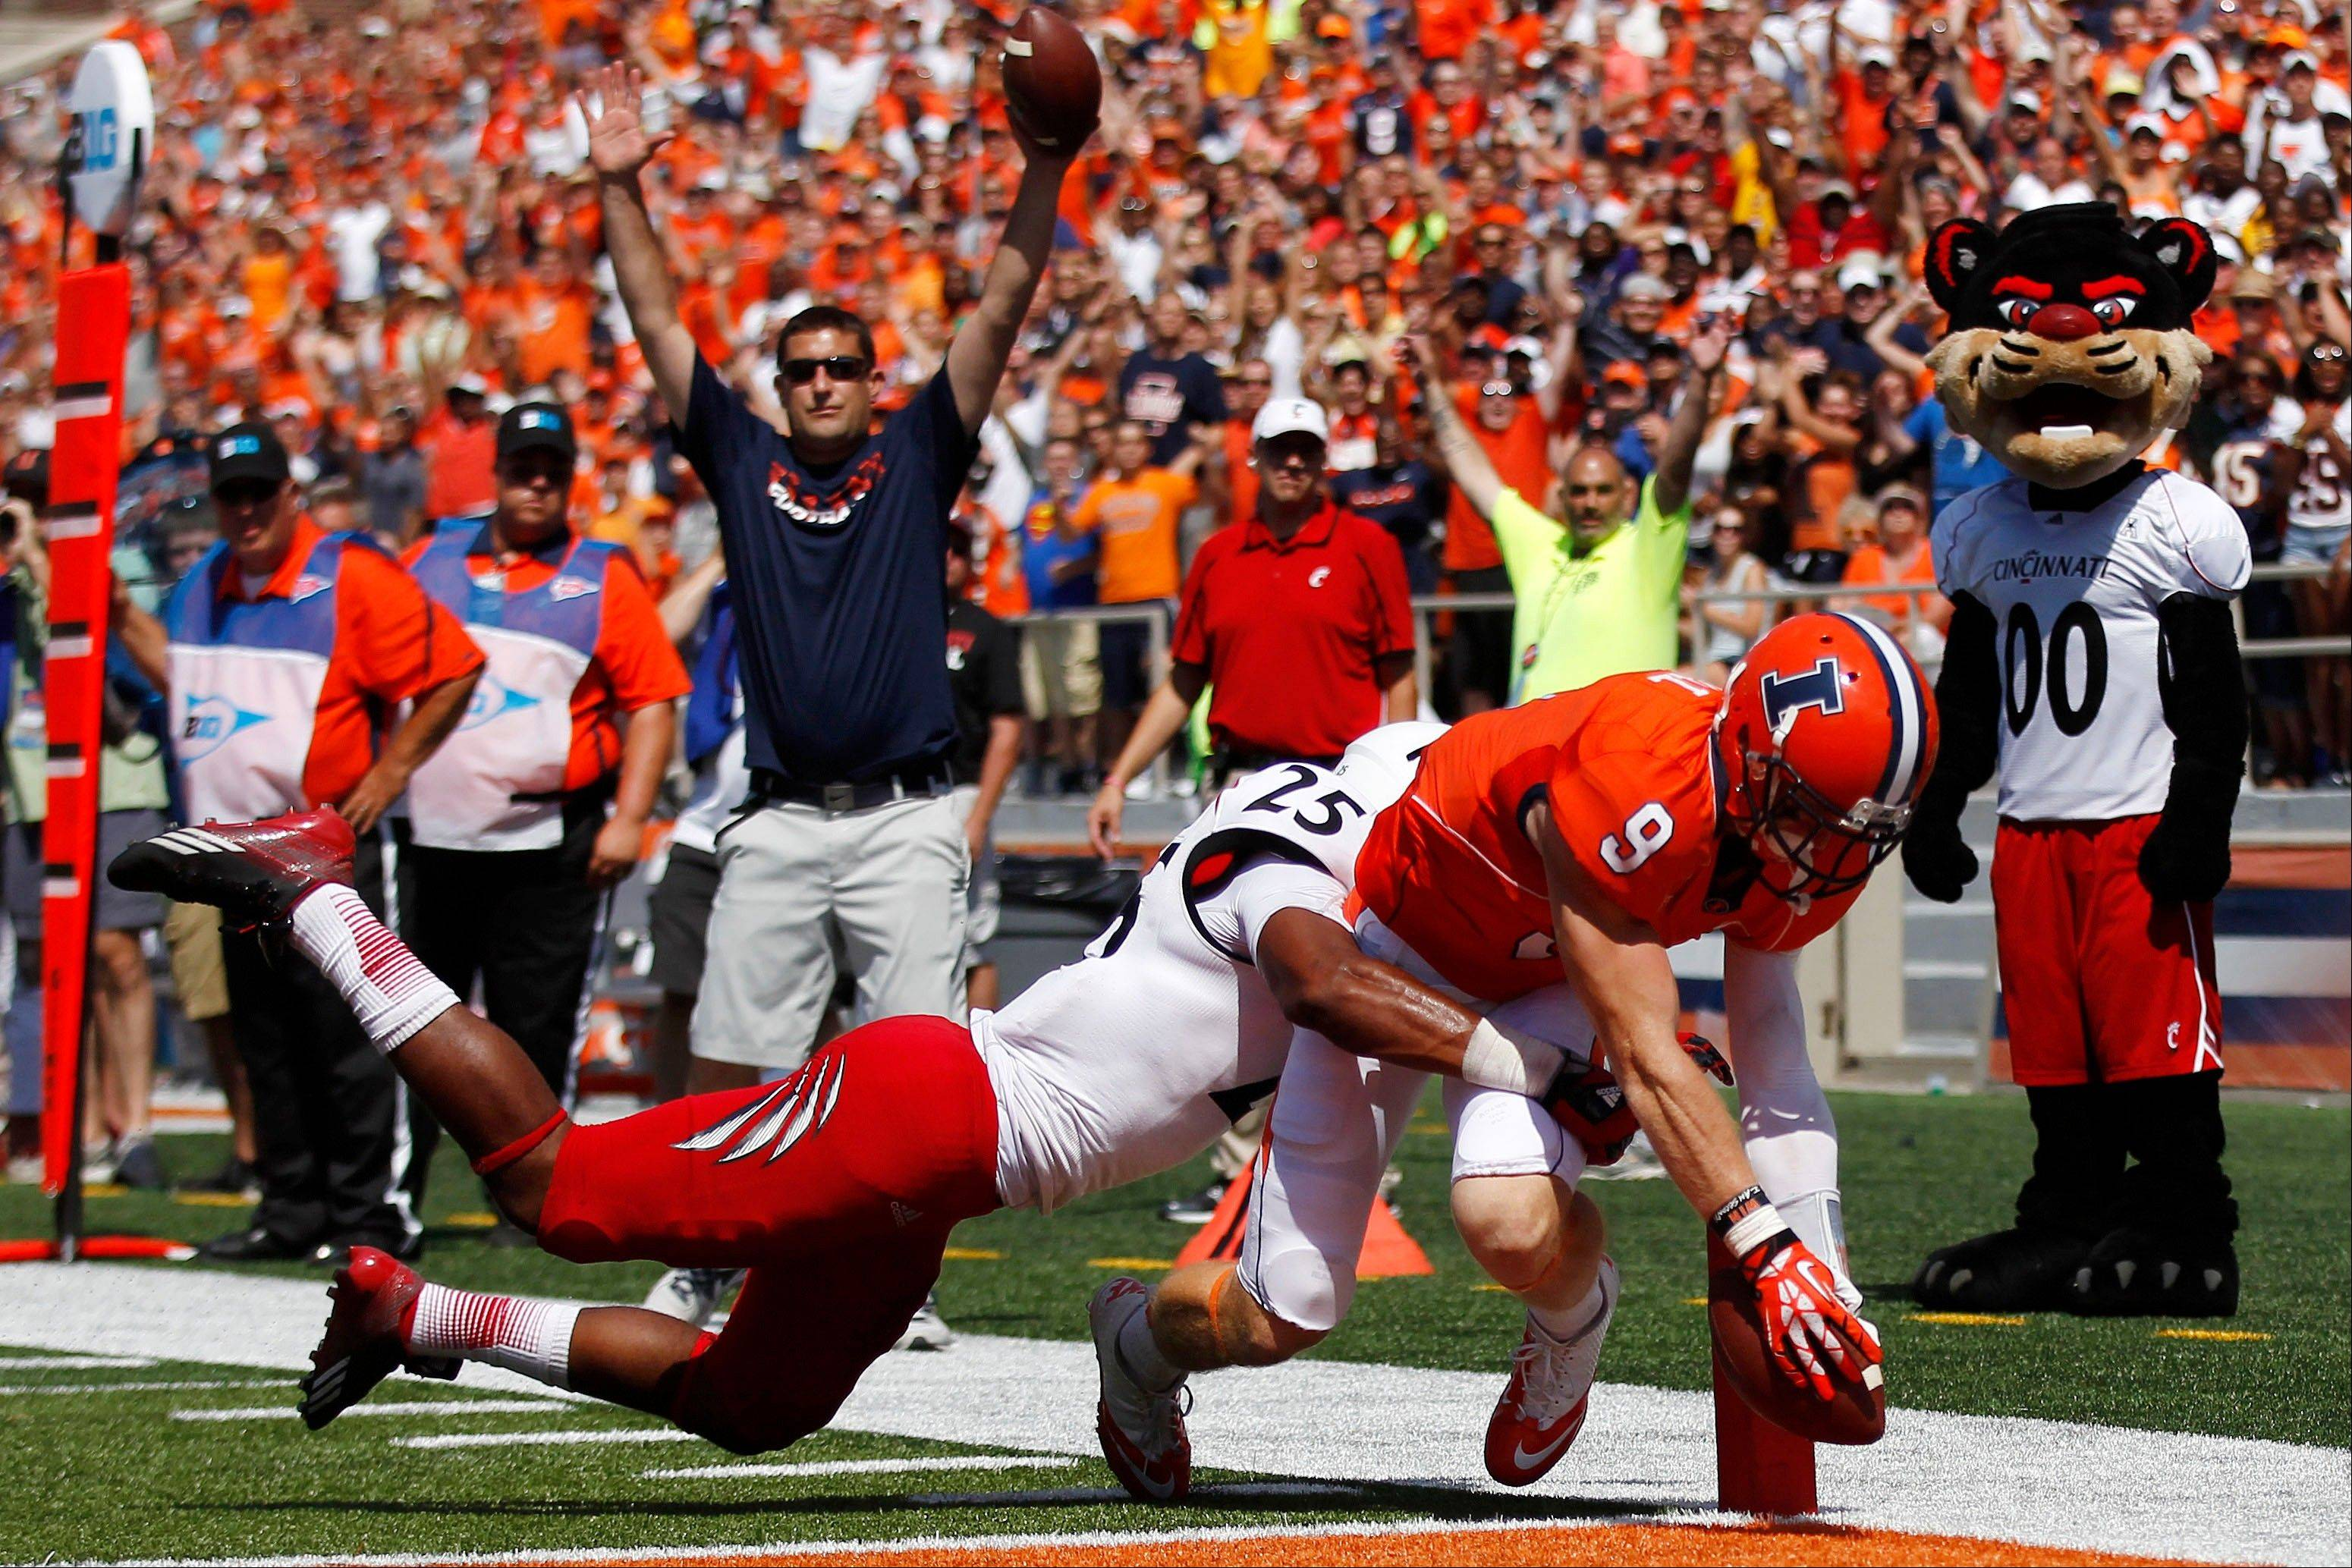 Illinois wide receiver Steve Hull cores a touchdown in front of Cincinnati safety Arryn Chenault during the second half of Saturday�s game in Champaign.